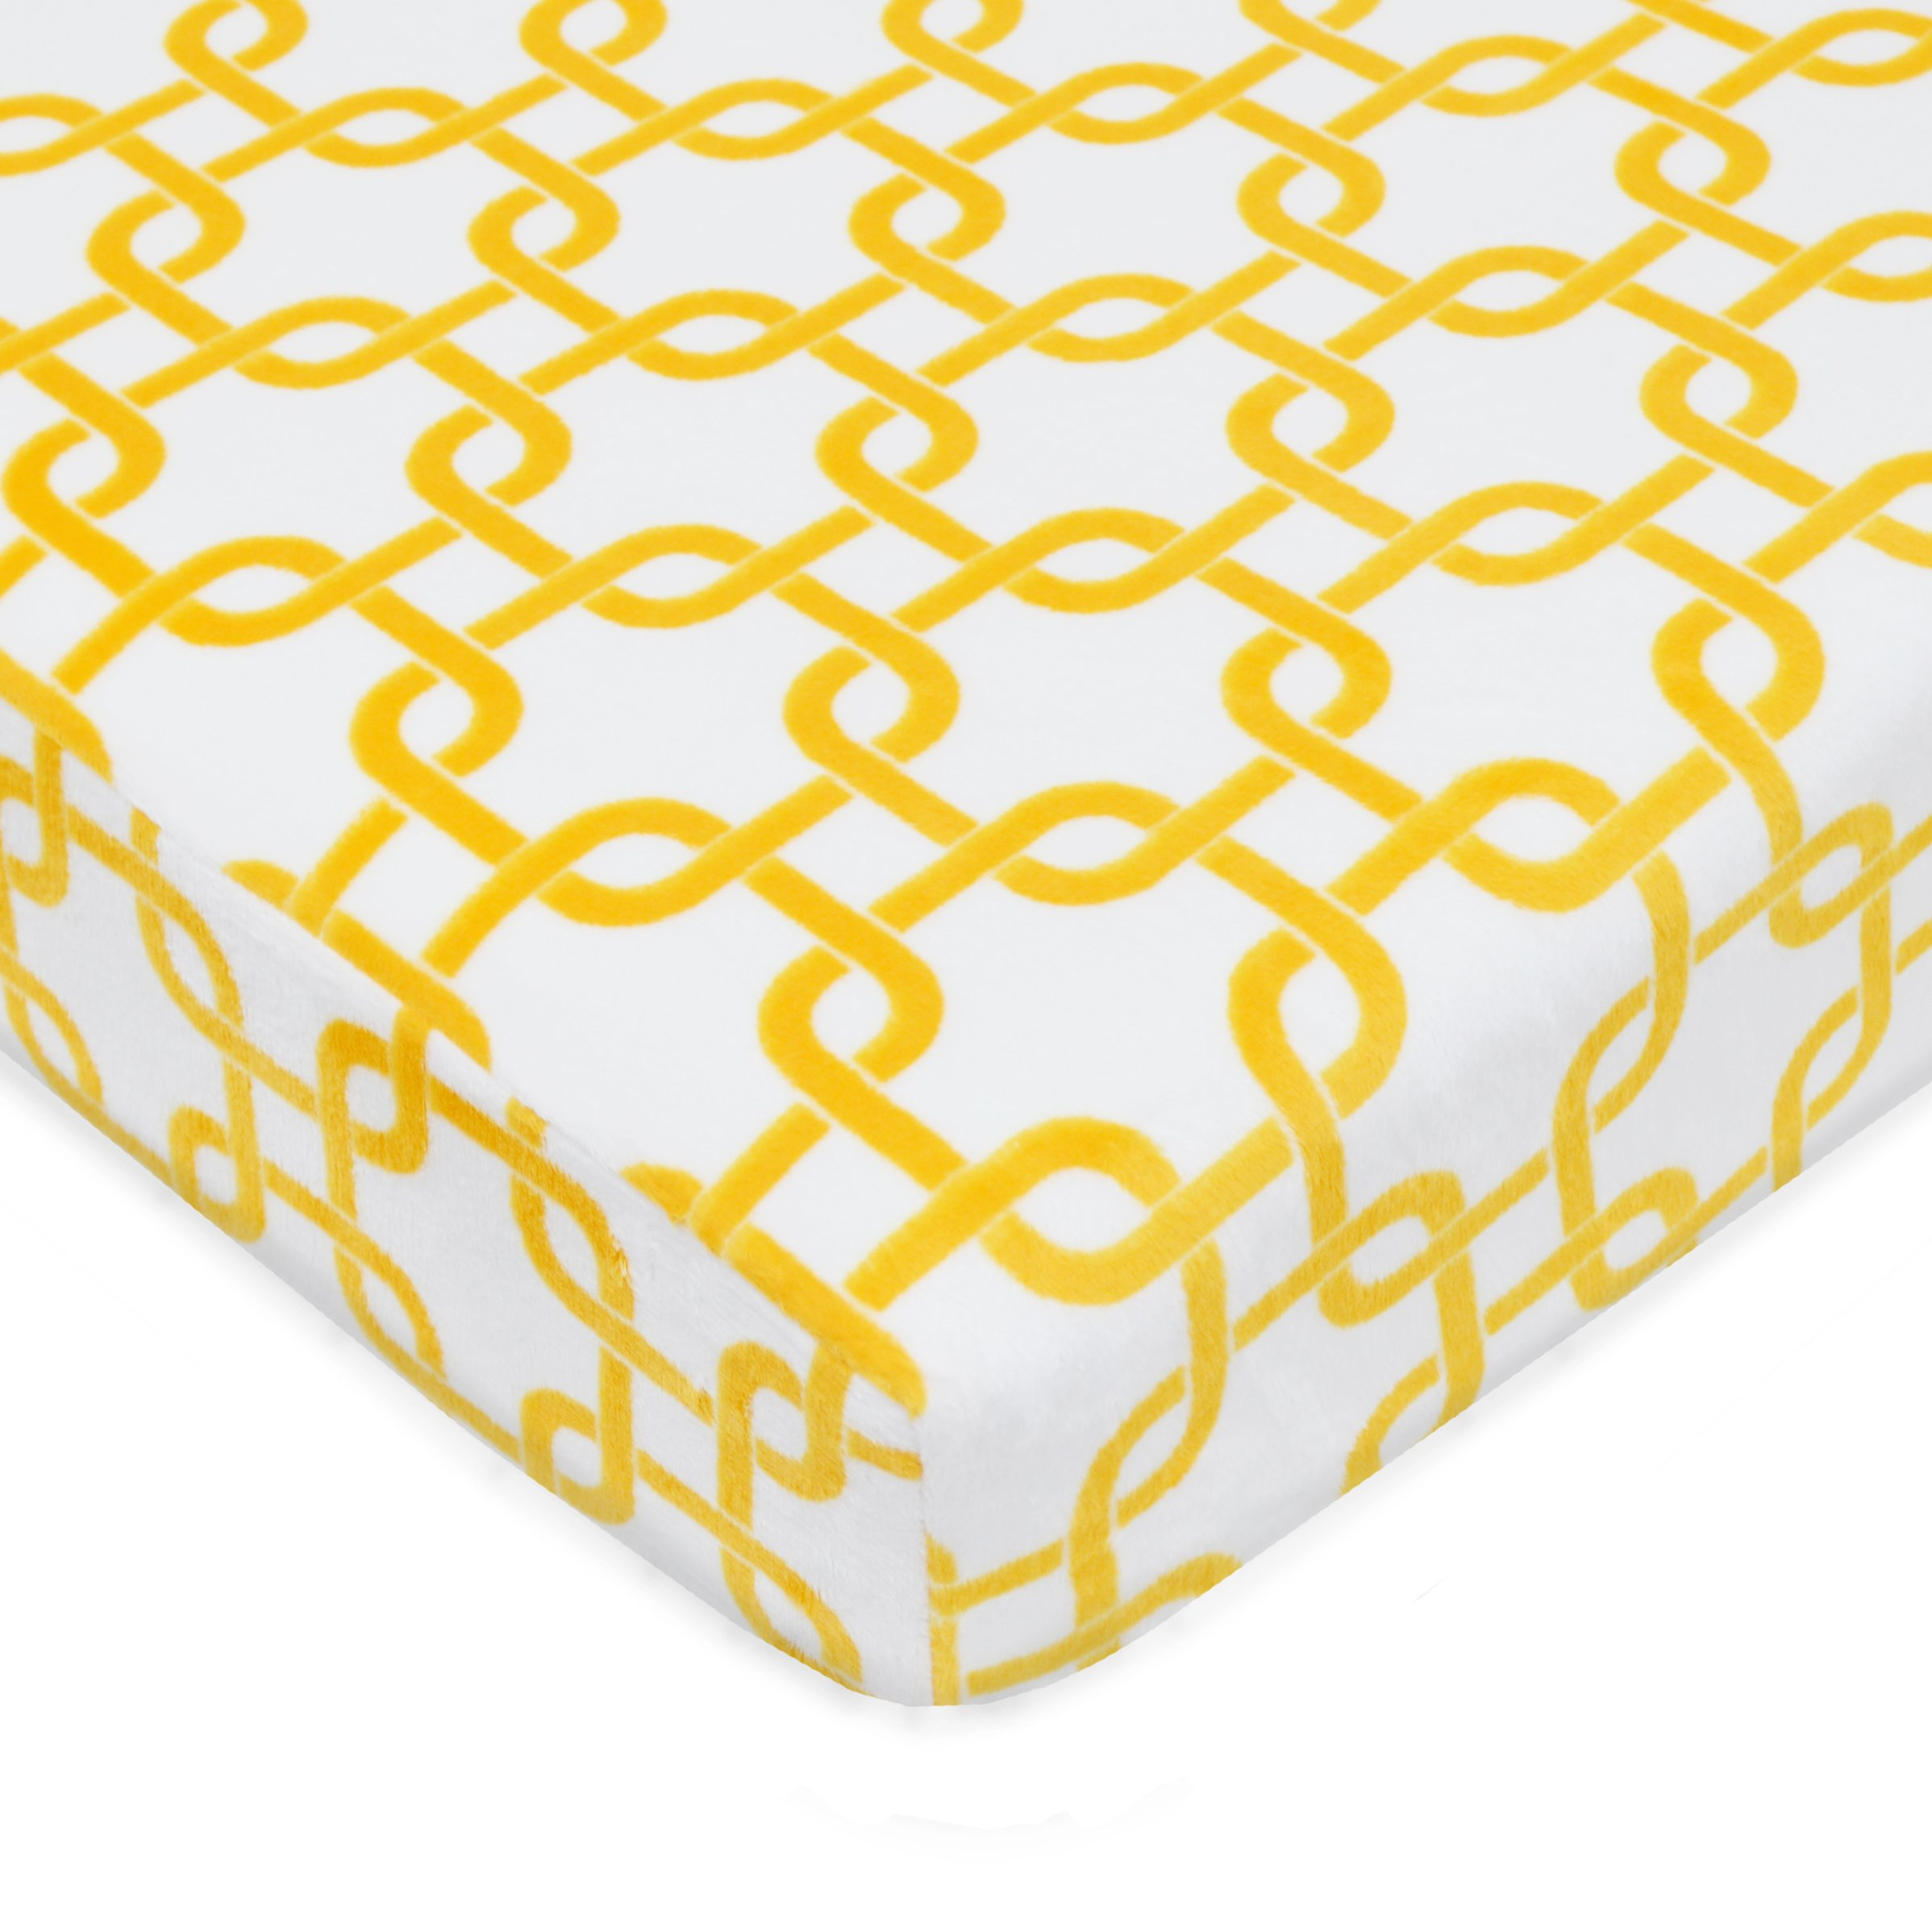 American Baby Company Heavenly Soft Chenille Fitted Pack N Play Playard Sheet, Golden Yellow Gotcha, 27'' x 39''